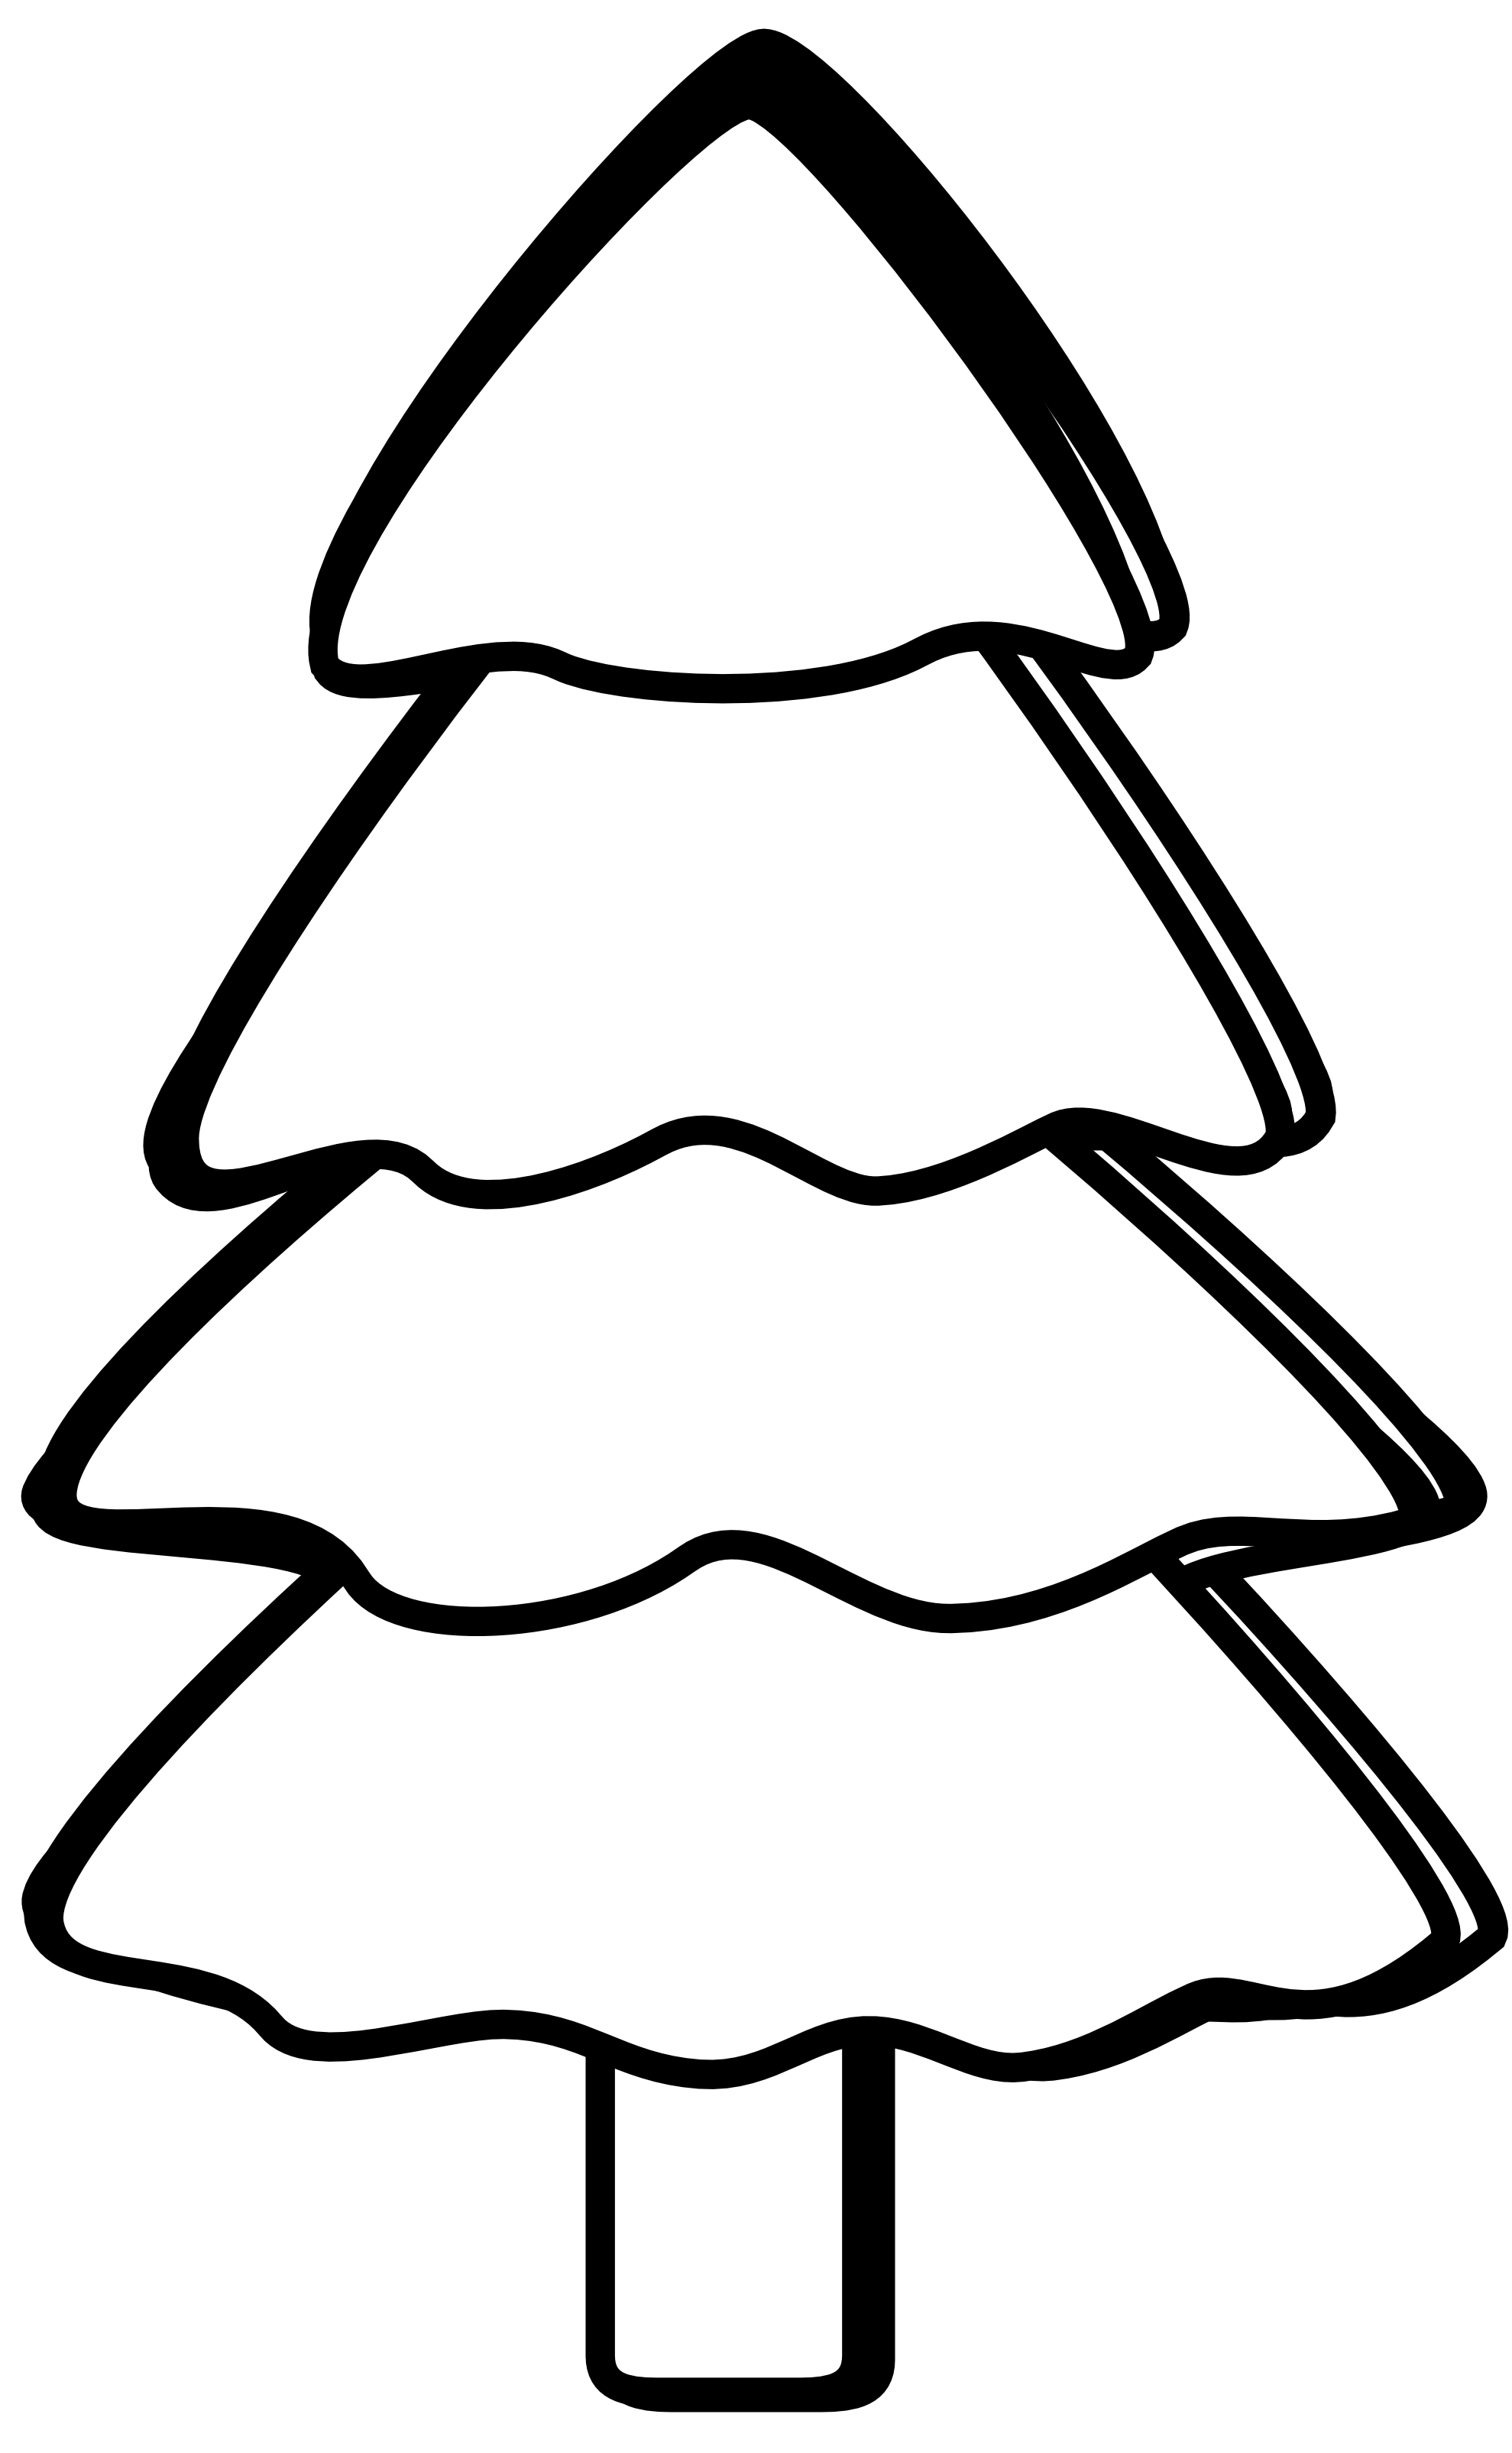 Black And White Tree Tattoos Clipart Free Download Best Black And